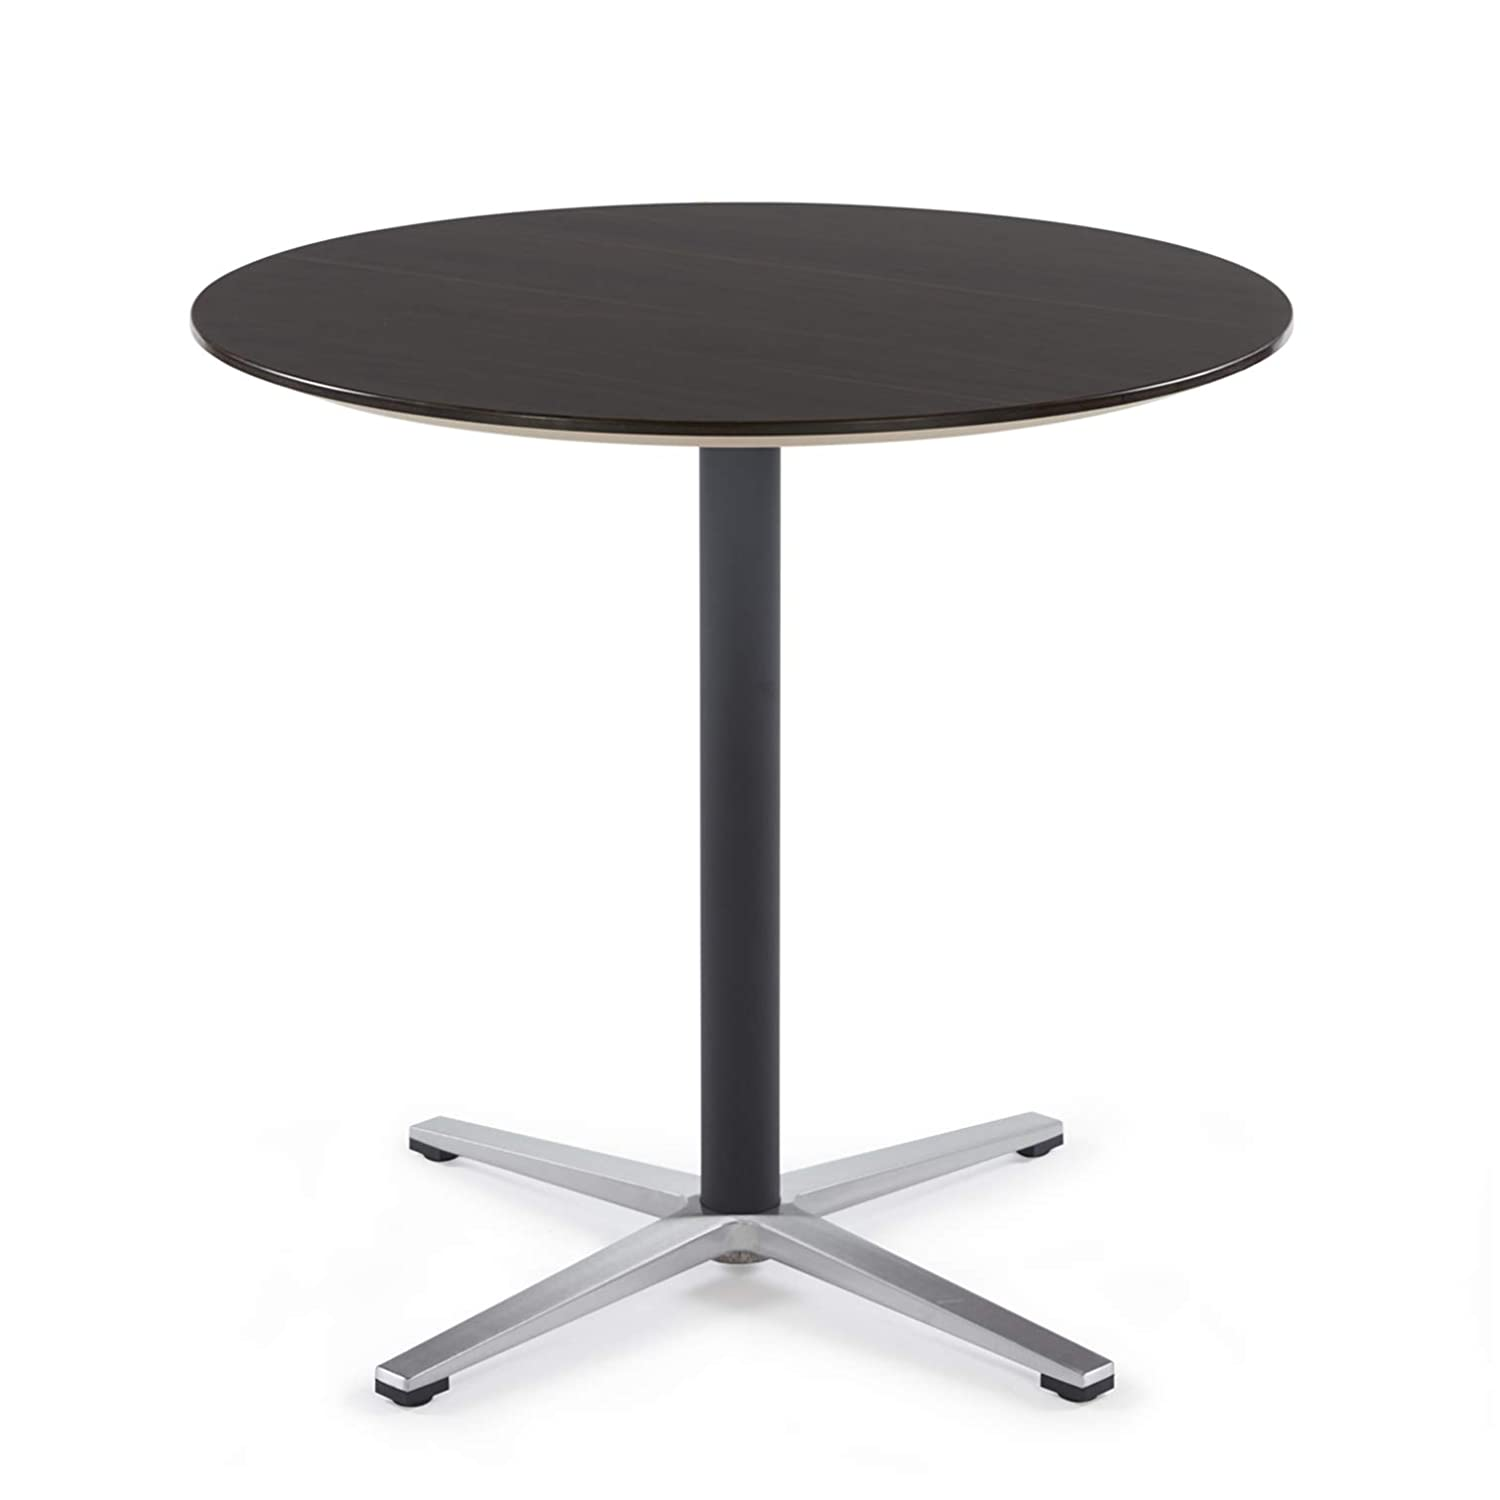 Sunon Round Bistro Table Small Round Table with X-Style Pedestal for Pub Table/Cafe Table/Office Table/Conference Table (Dark Walnut,29.5-Inch Height)